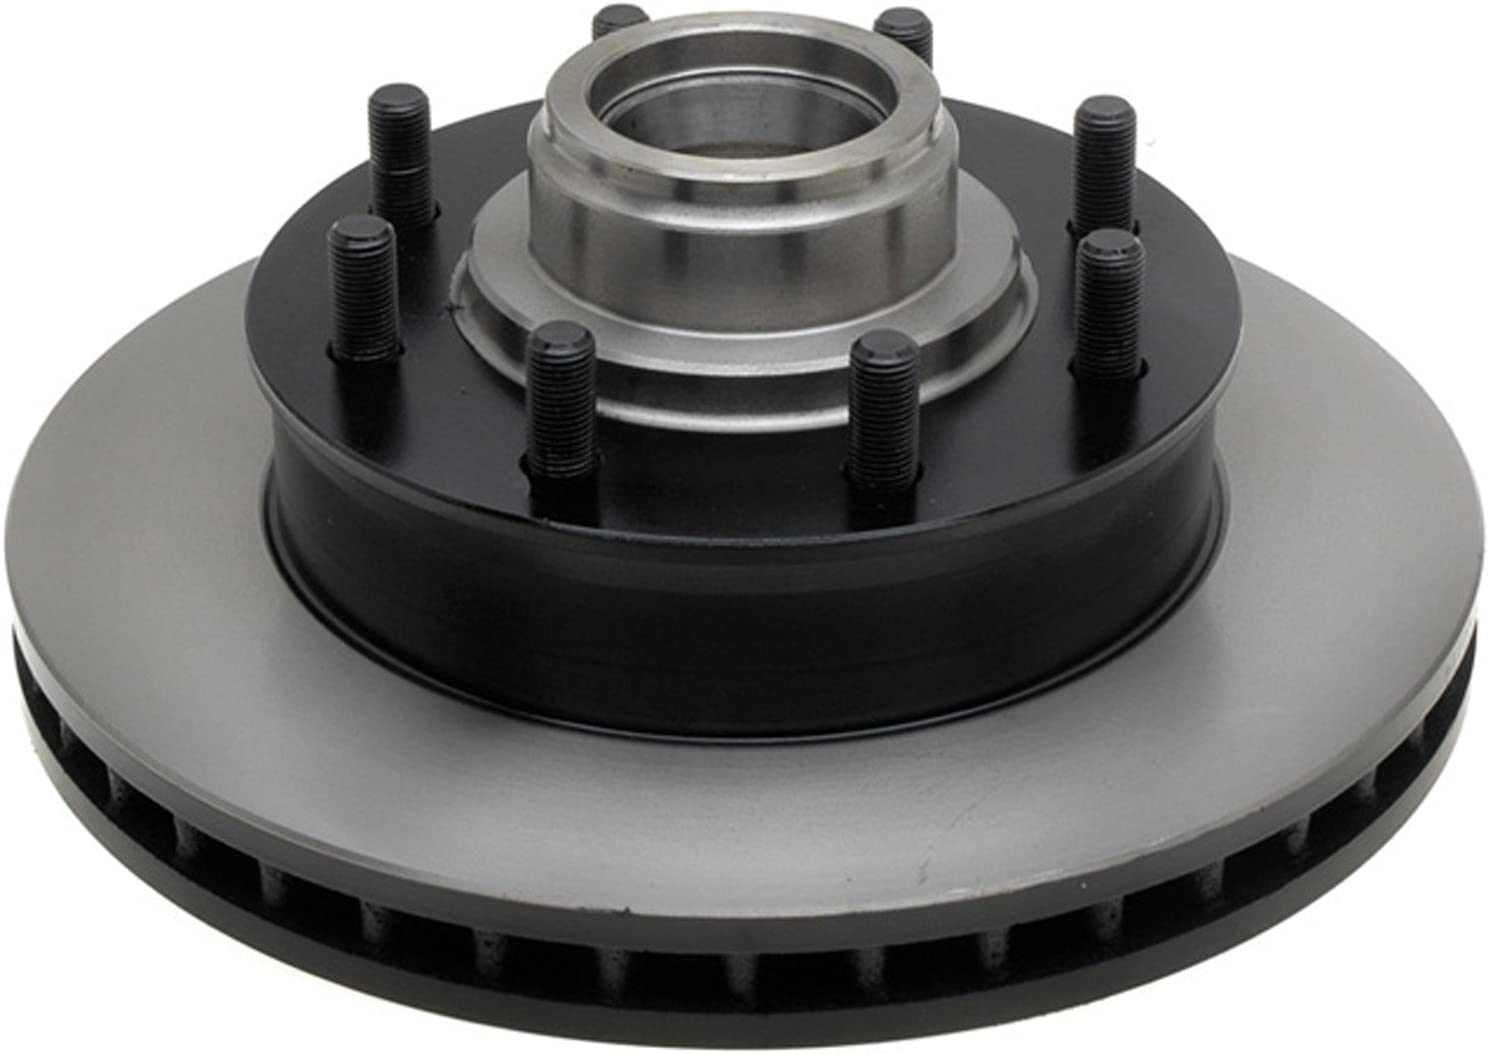 B000C9DXJ4 ACDelco 18A507 Professional Front Disc Brake Rotor and Hub Assembly 71hpMkzi1ML.SL1500_